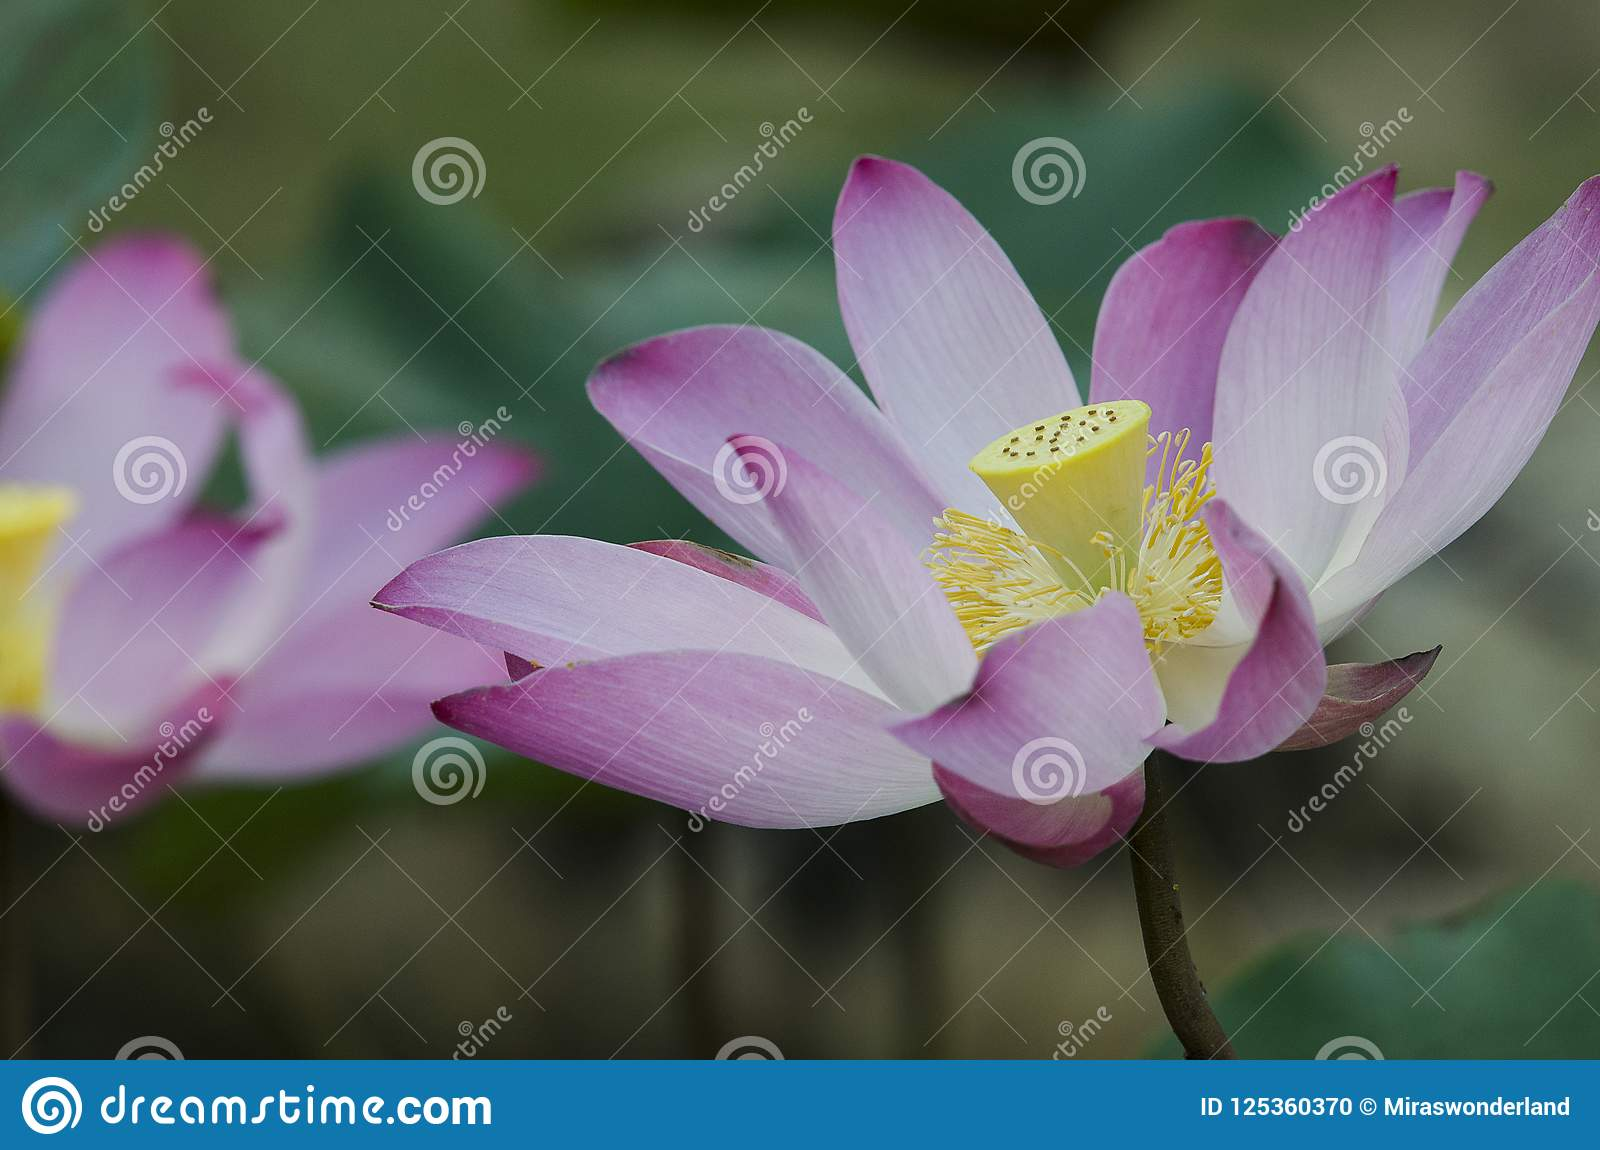 Close up of a pink blooming lotus flowers stock photo image of download close up of a pink blooming lotus flowers stock photo image of flora izmirmasajfo